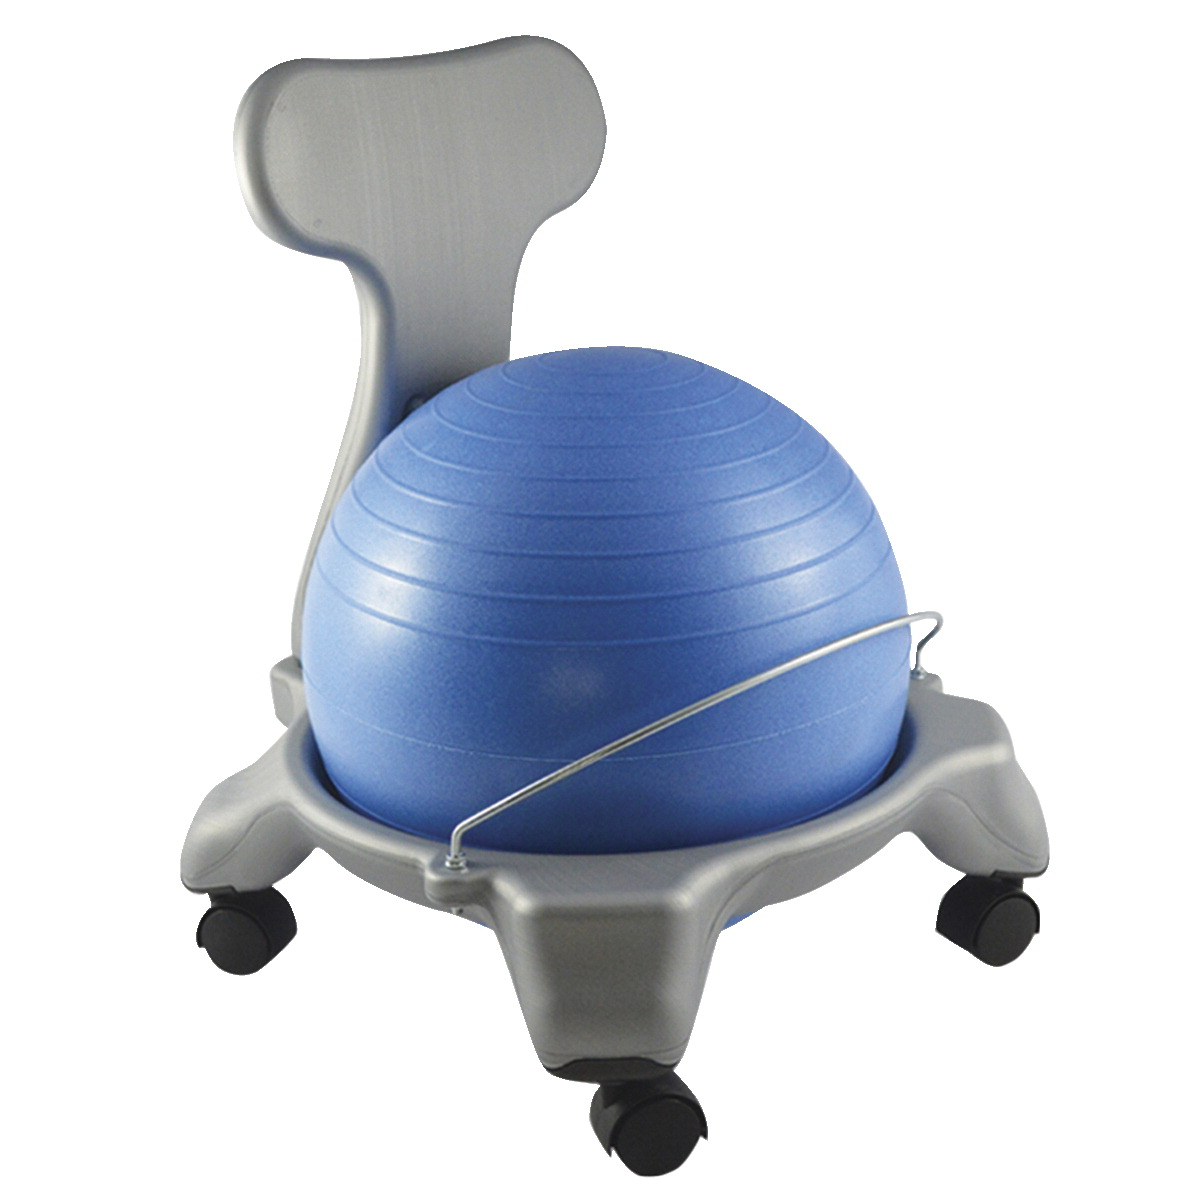 CanDo Ball Chair with Back, Plastic, Child Size, 15 Inch Ball